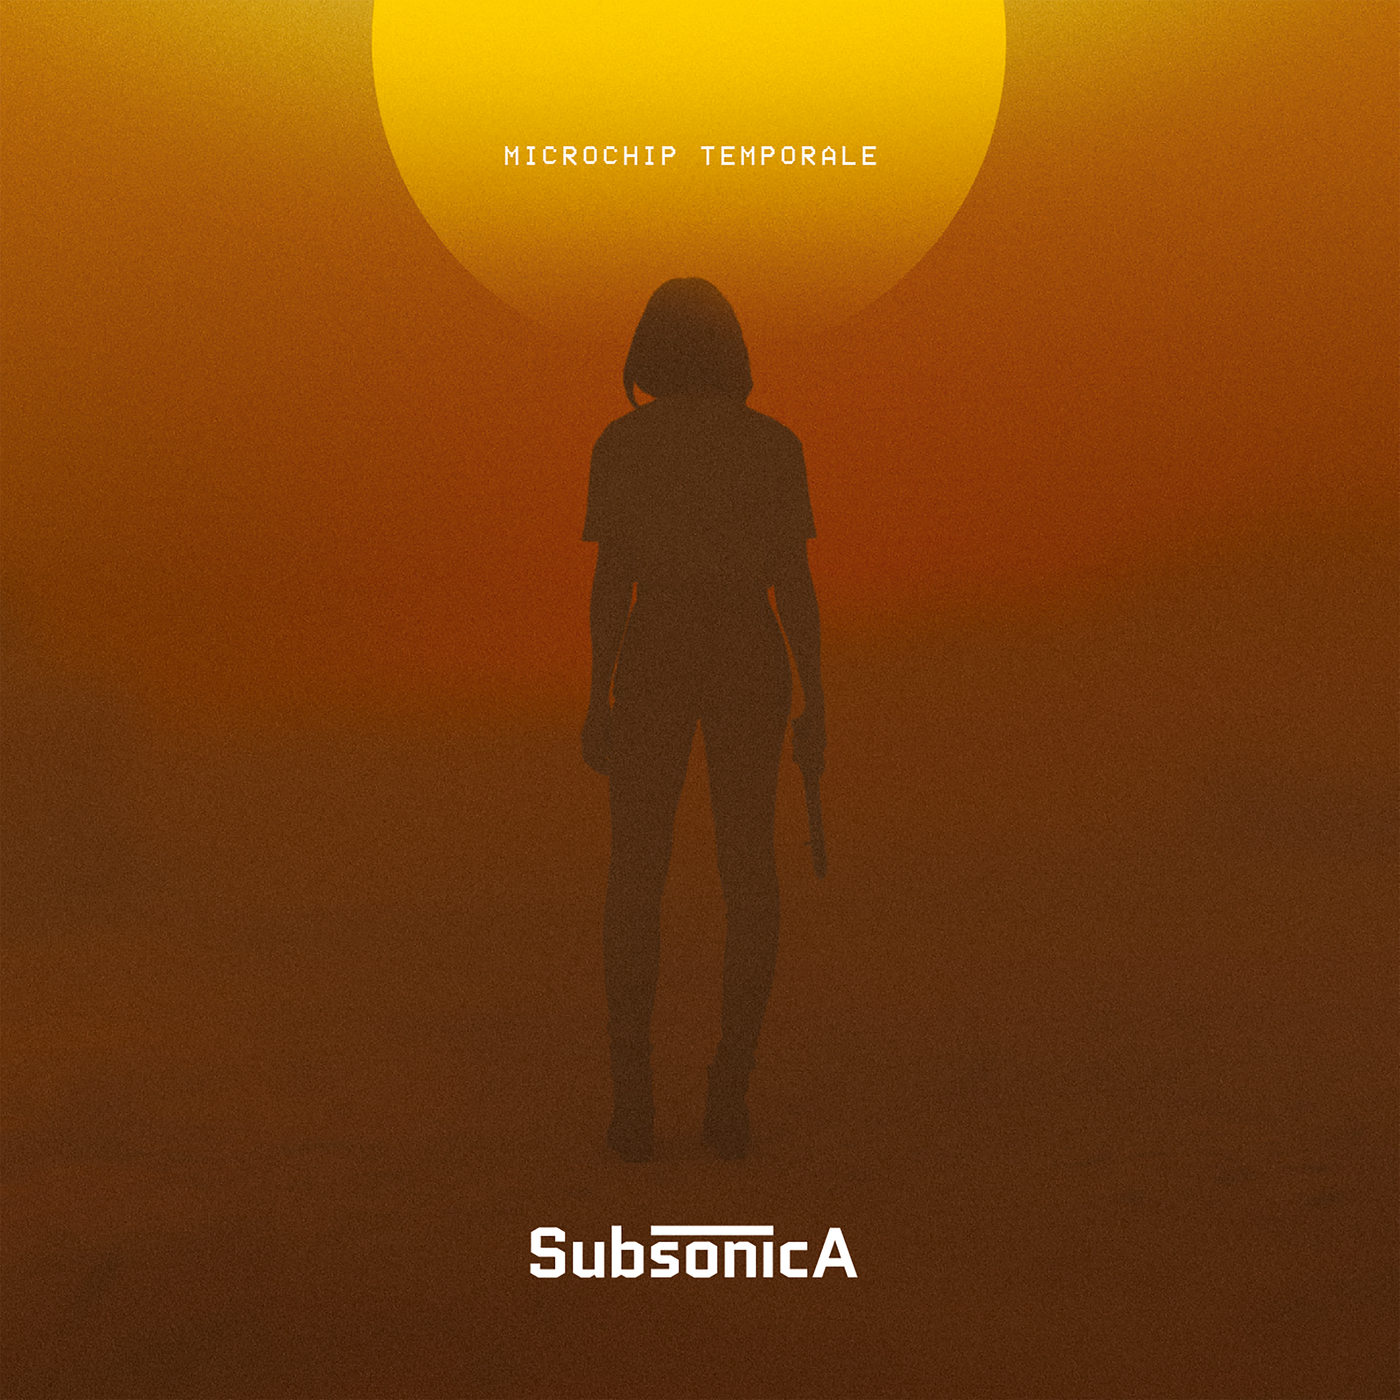 Microchip temporale - Subsonica